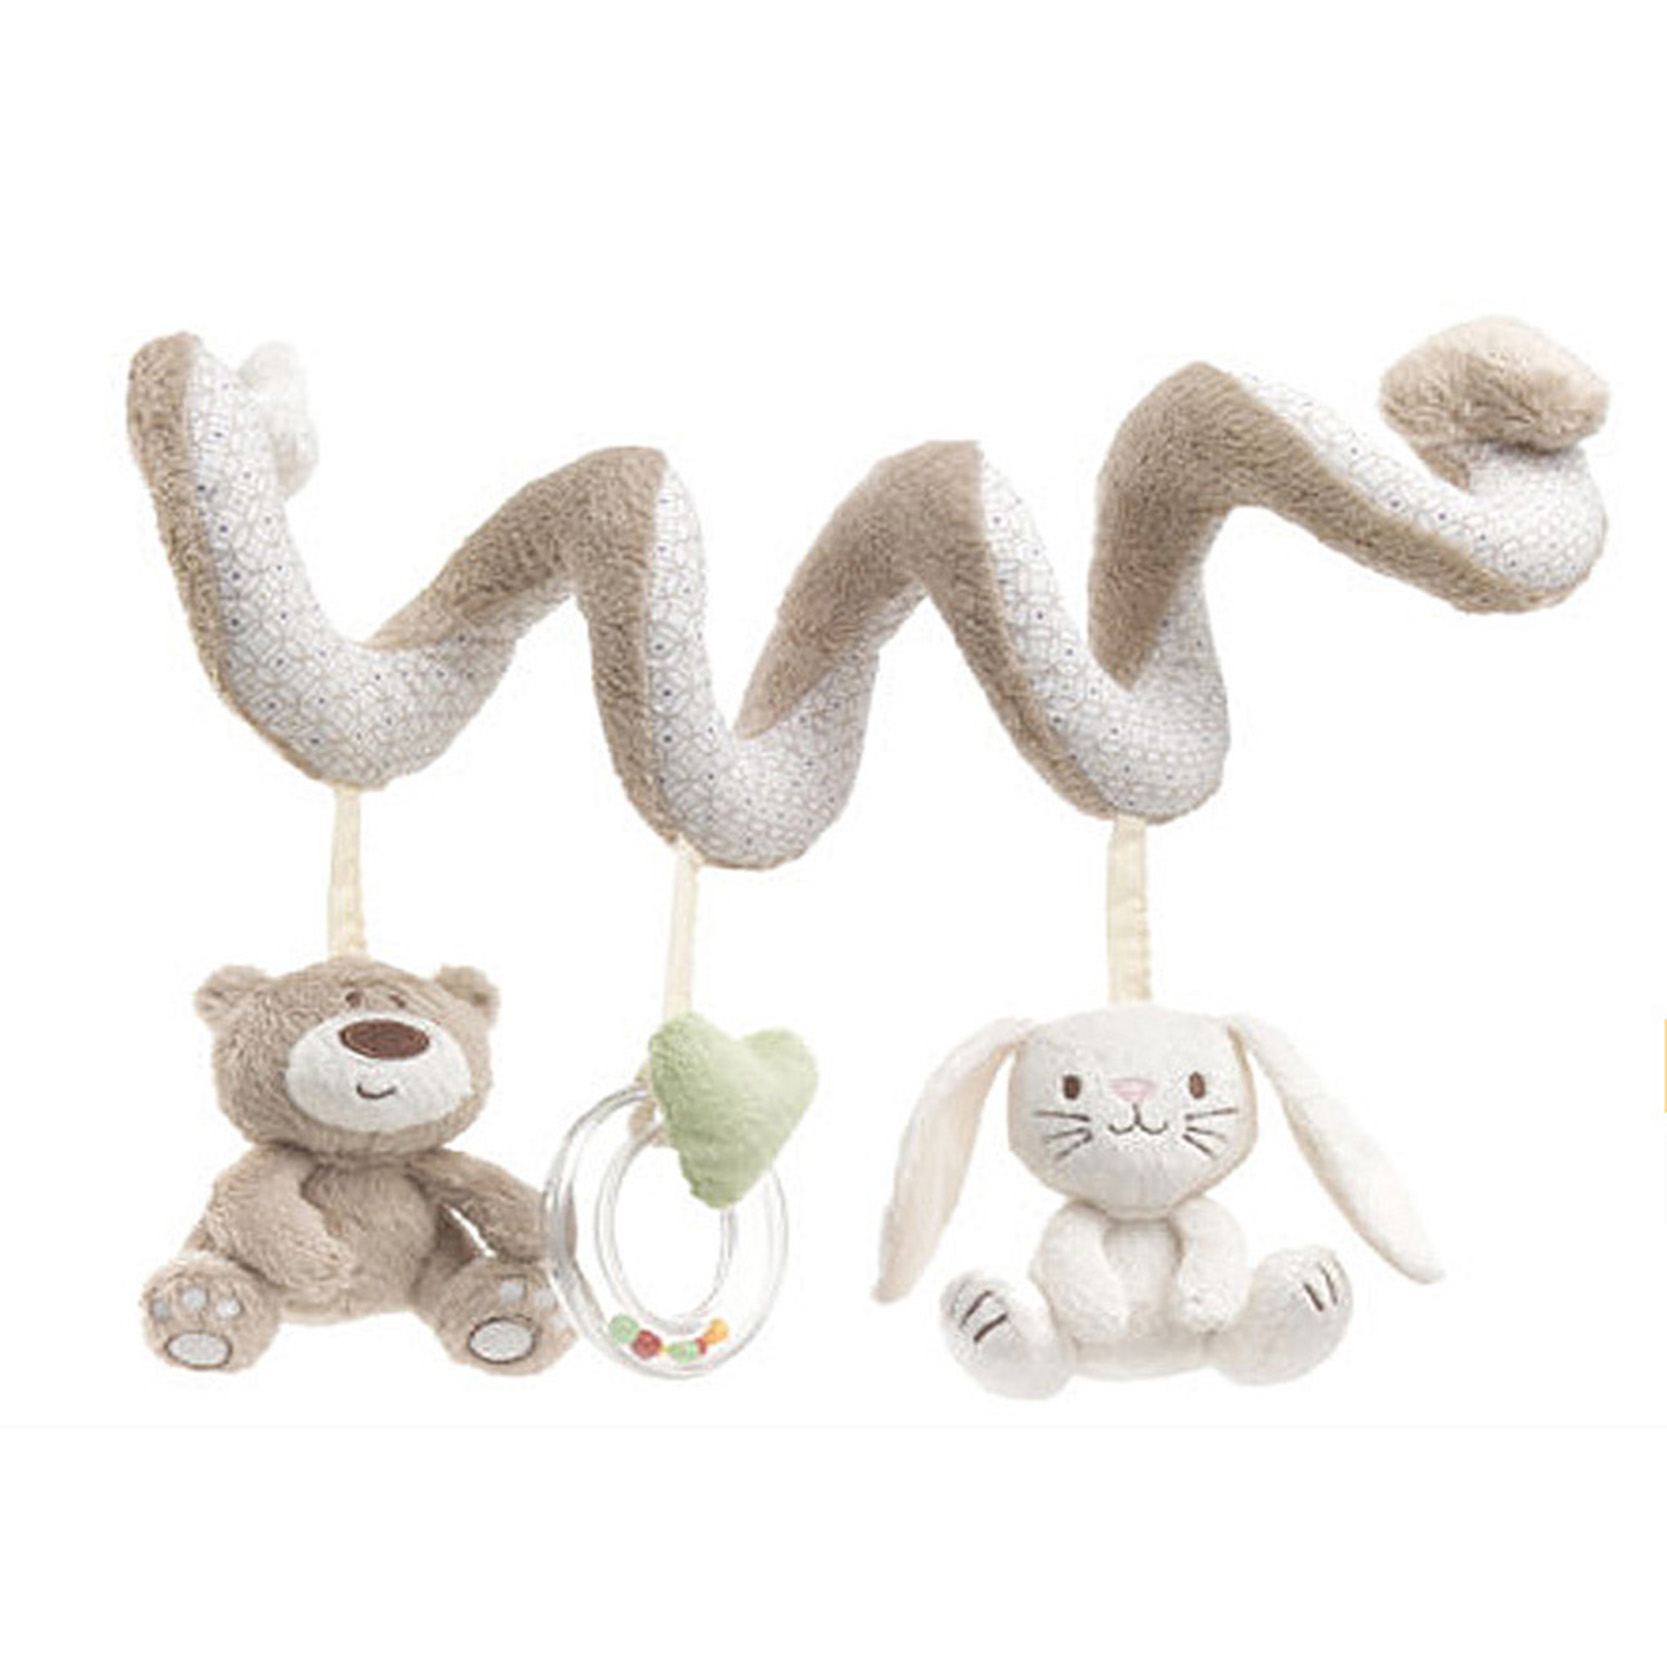 Crib activity toys for babies - Baby Rattle Bed Stroller Hanging Spiral Activity Rabbit Musical Mobile Bell Infant Educational Toys Rattles Baby